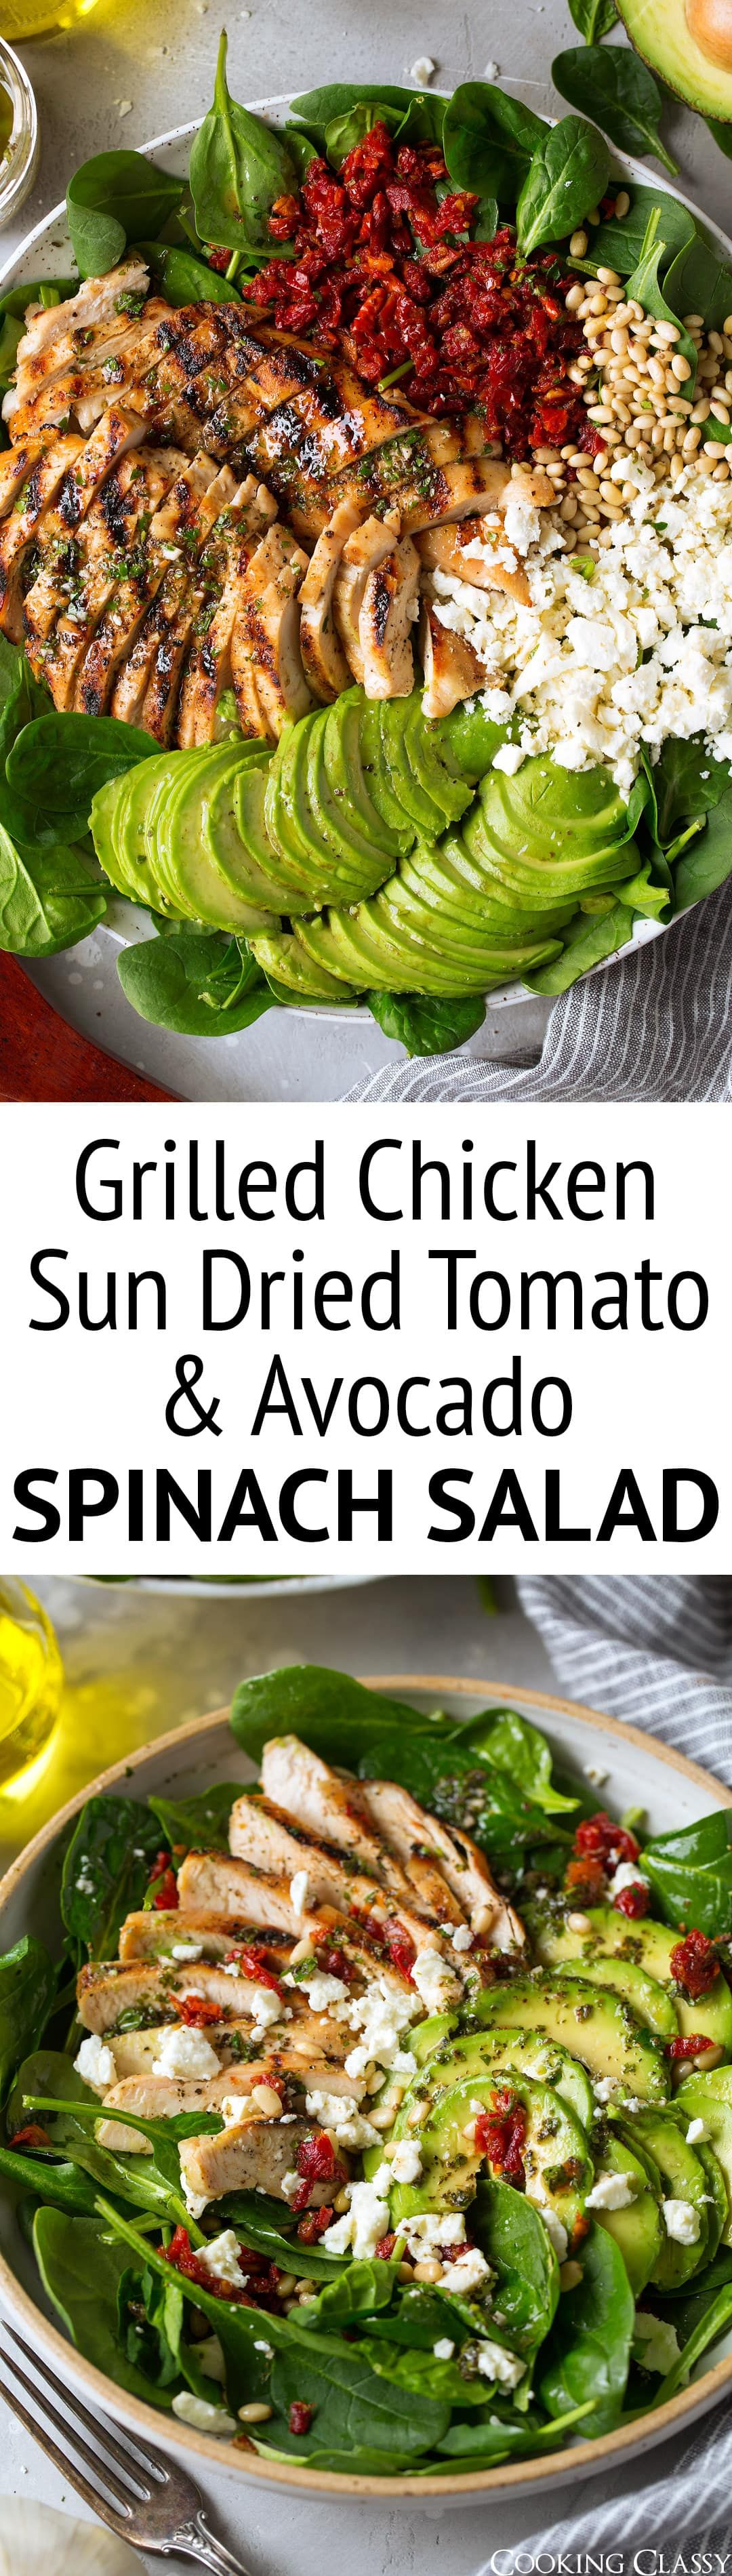 Grilled Chicken Sun Dried Tomato and Avocado Spinach Salad - This is such a flavorful and satisfyin